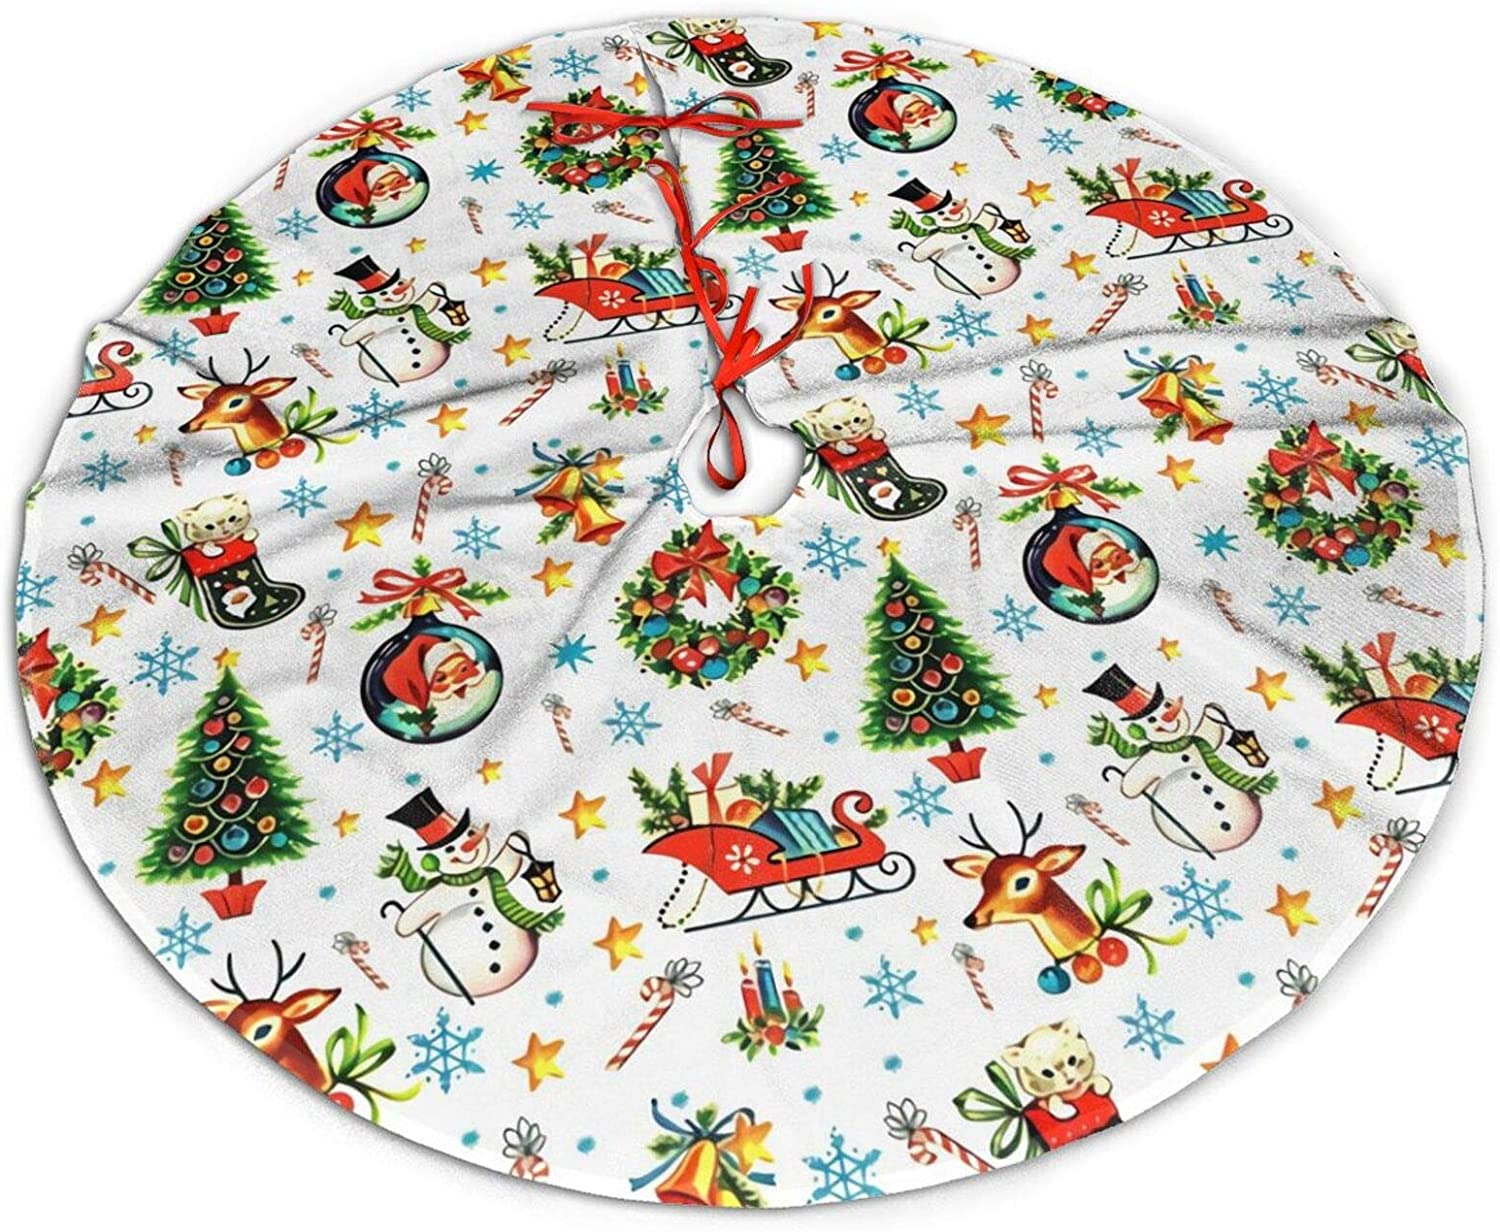 antkondnm Merry Christmas Xmas Stars Bells Snowflakes Candy Canes Christmas Tree Skirt - Holiday Party Decoration 36 inch